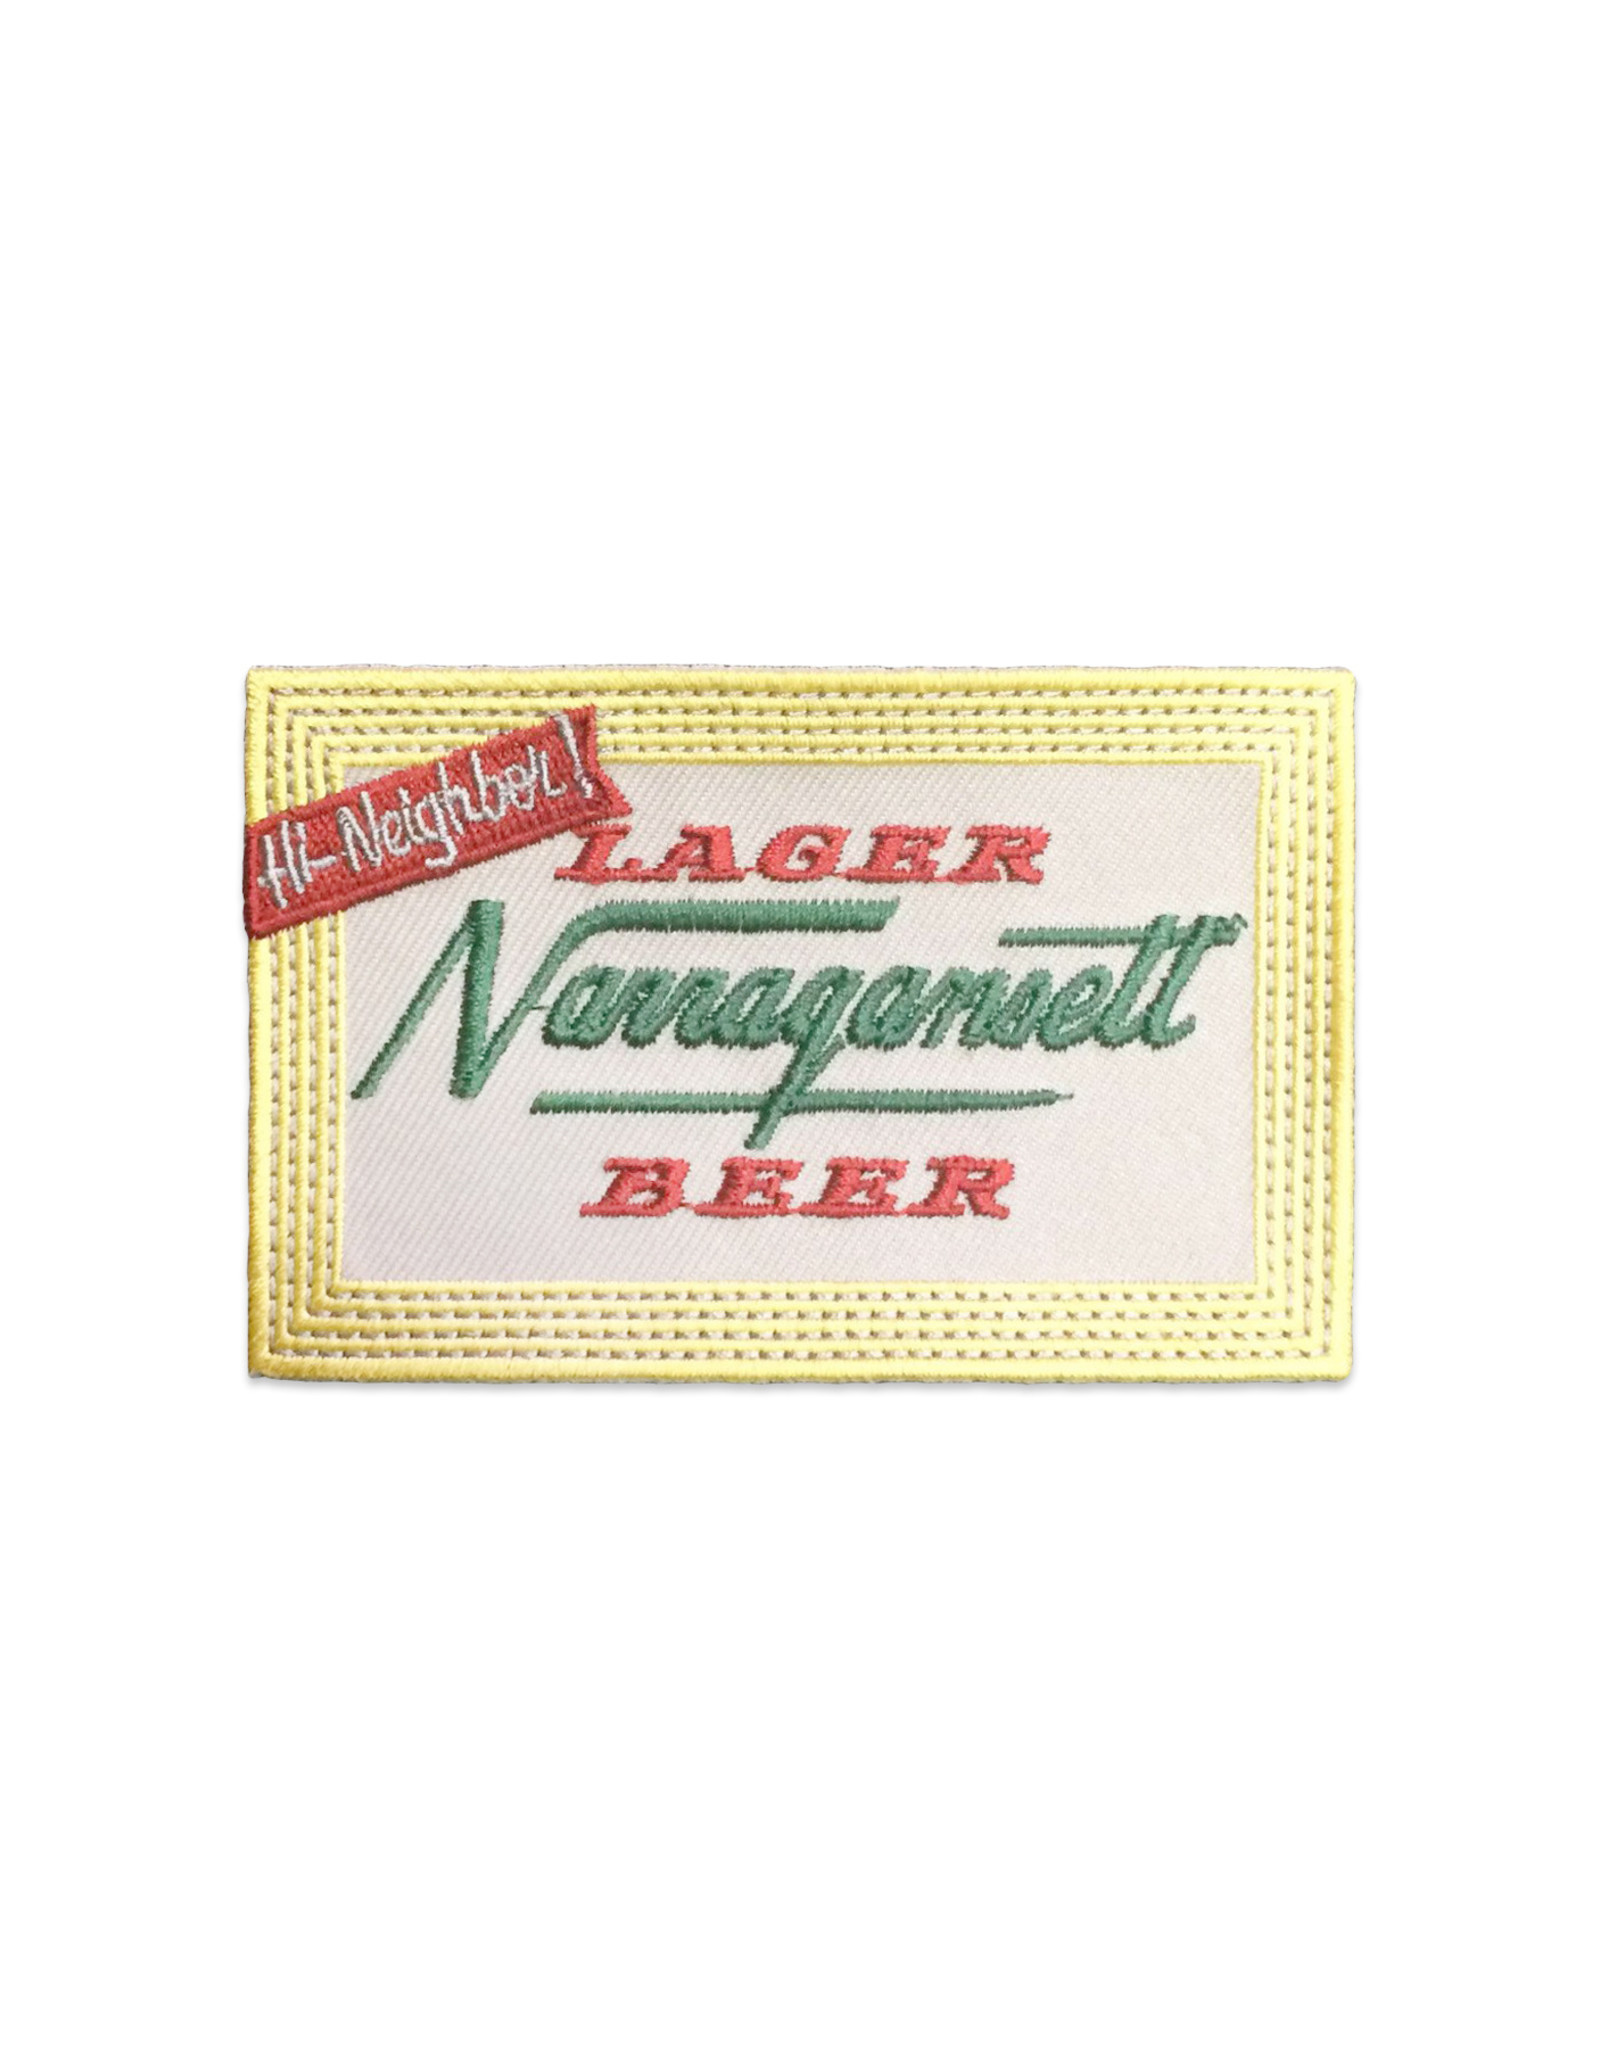 1950s Narragansett Patch